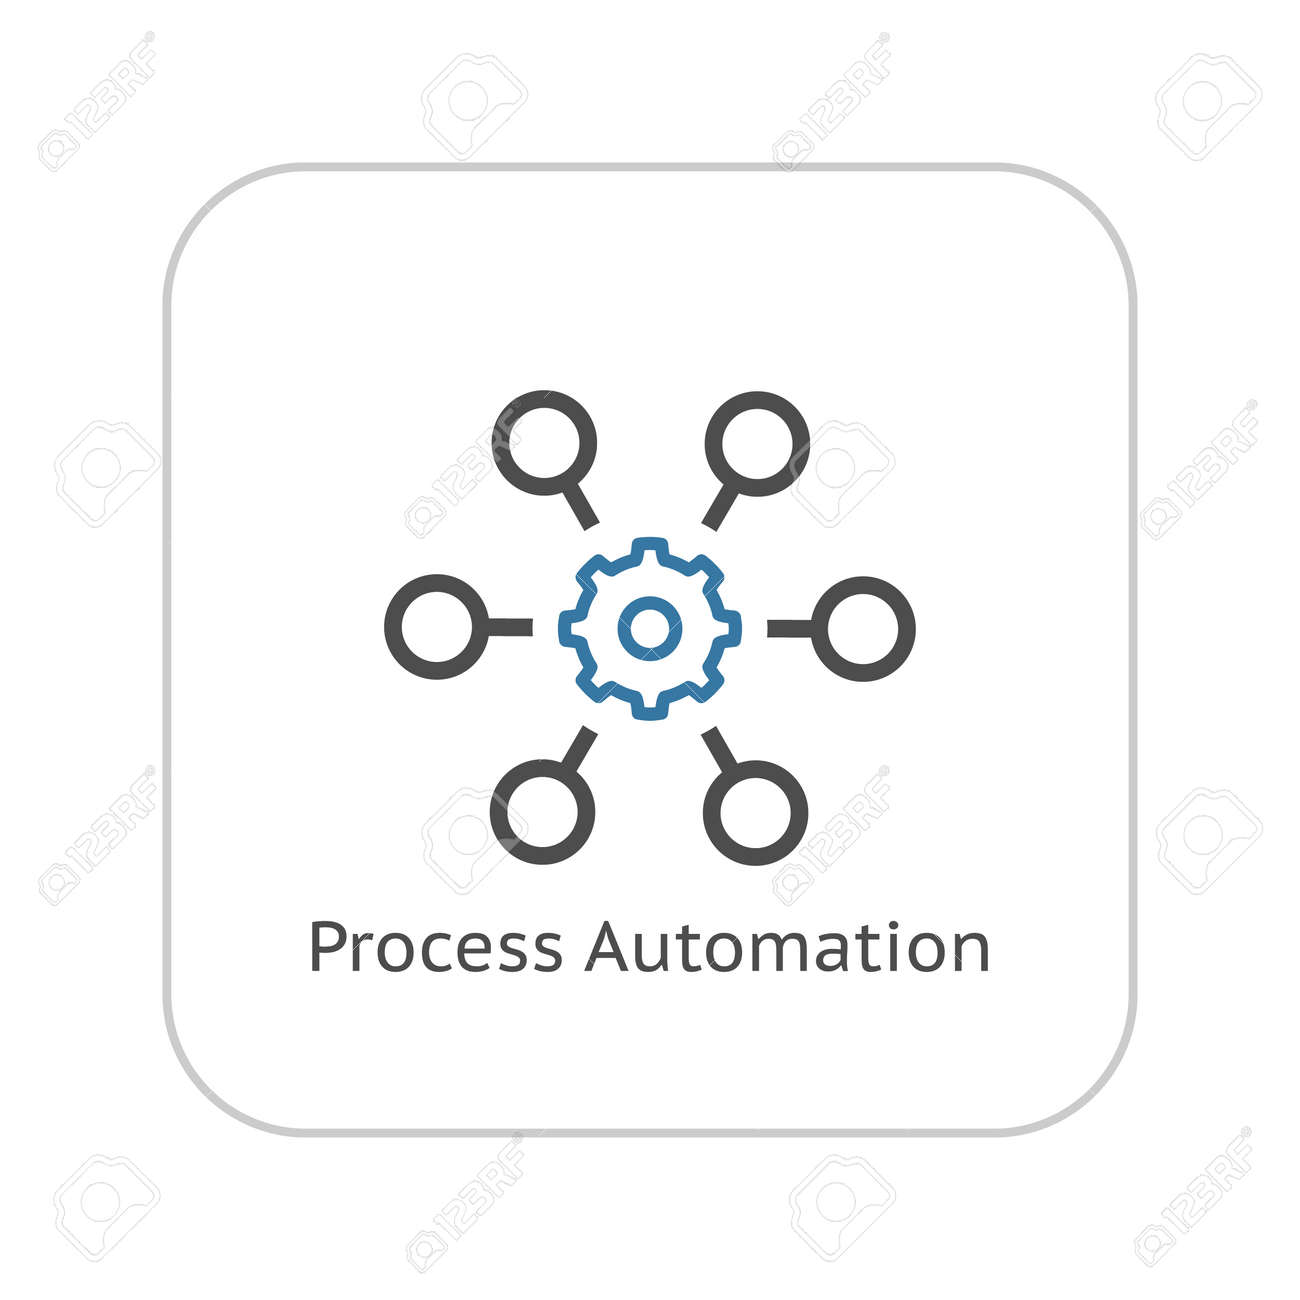 Process Automation Icon. Business Concept. Flat Design.Isolated Illustration. - 46094973